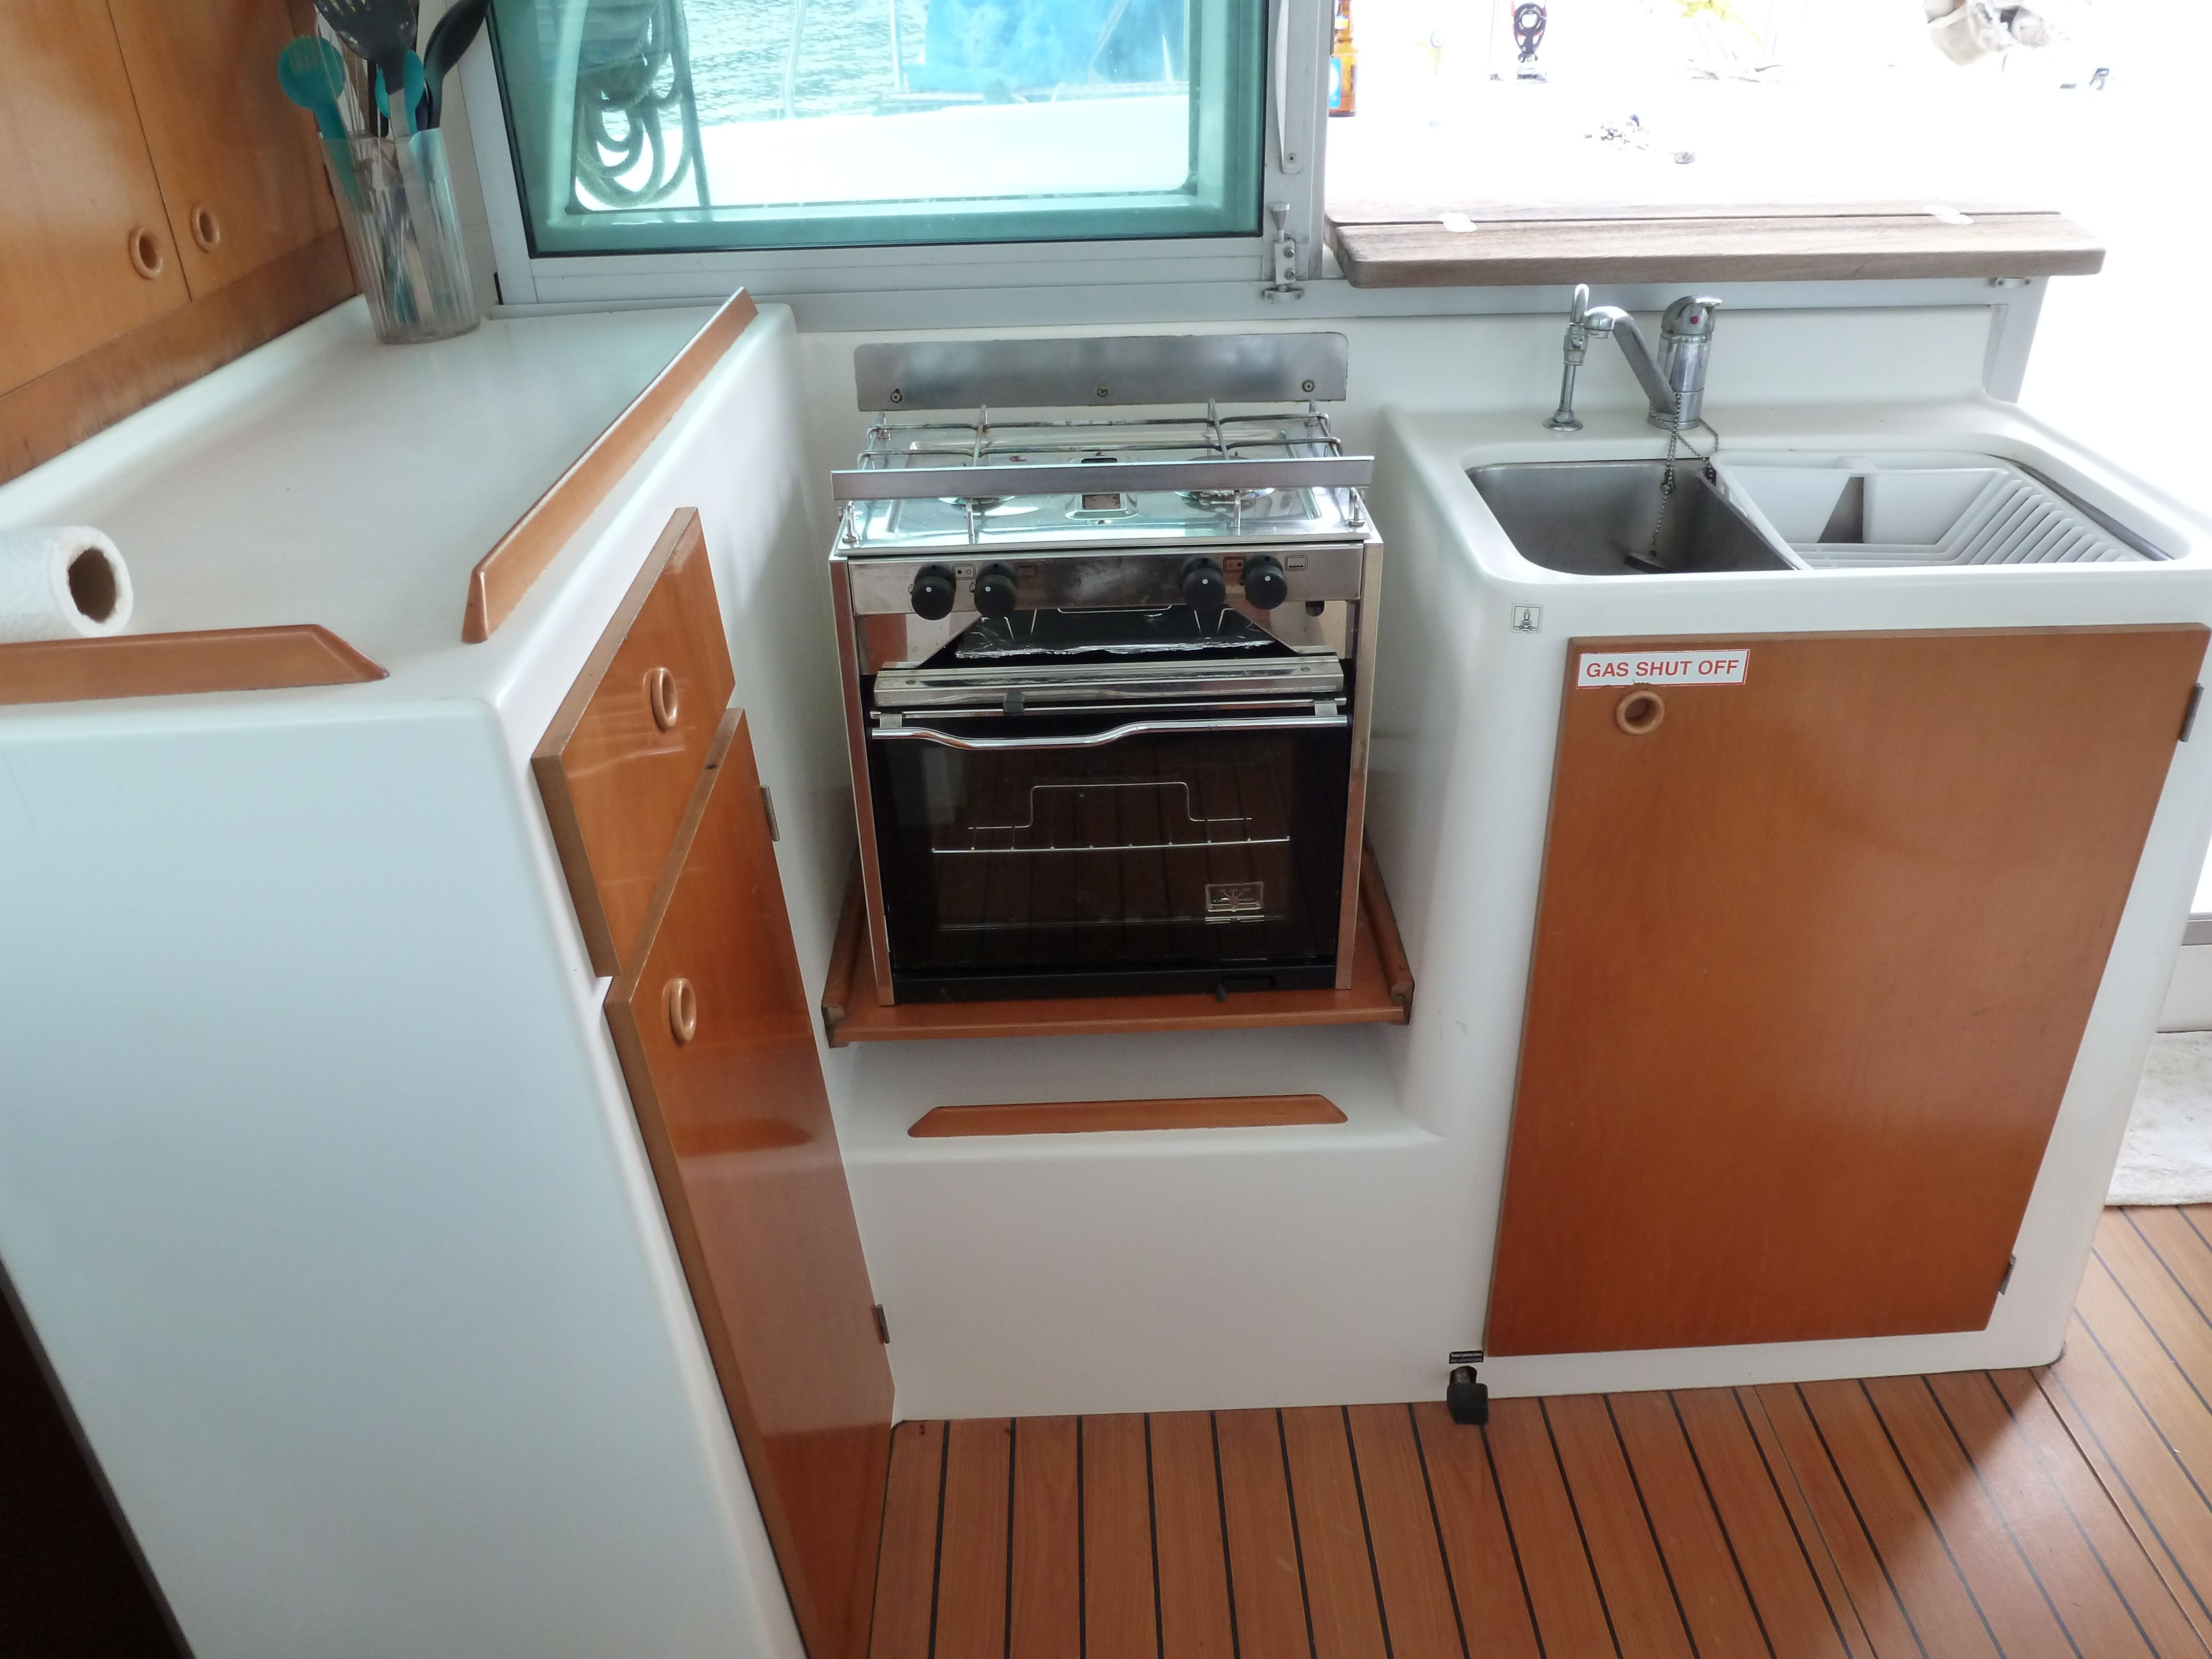 Lagoon 380 galley catamaran galleys or yacht interiors for Galley kitchen cabinets for sale